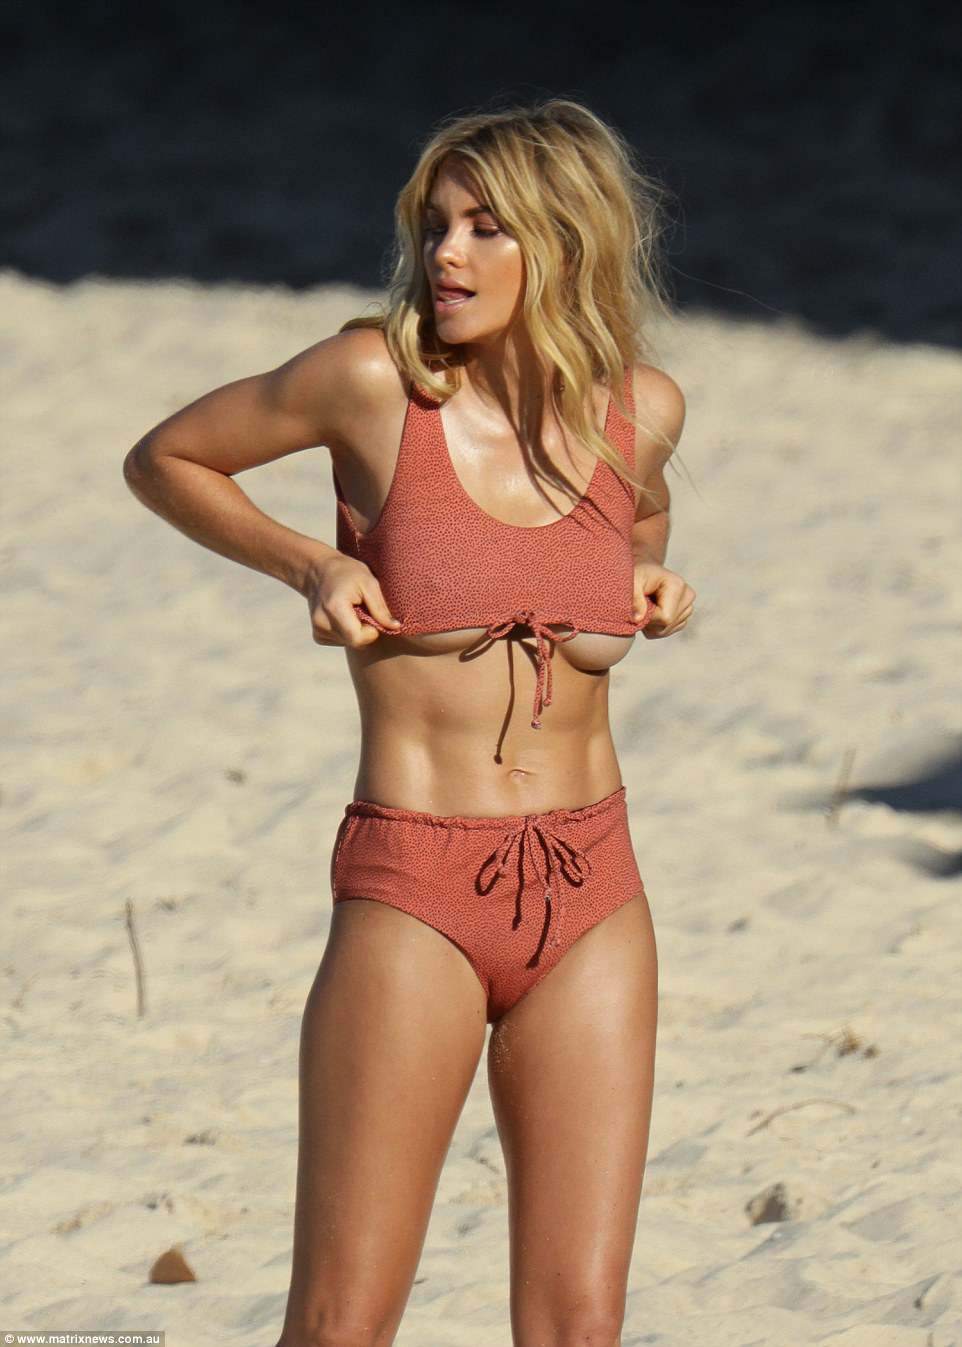 Elyse Taylor bares underboob during beach shoot